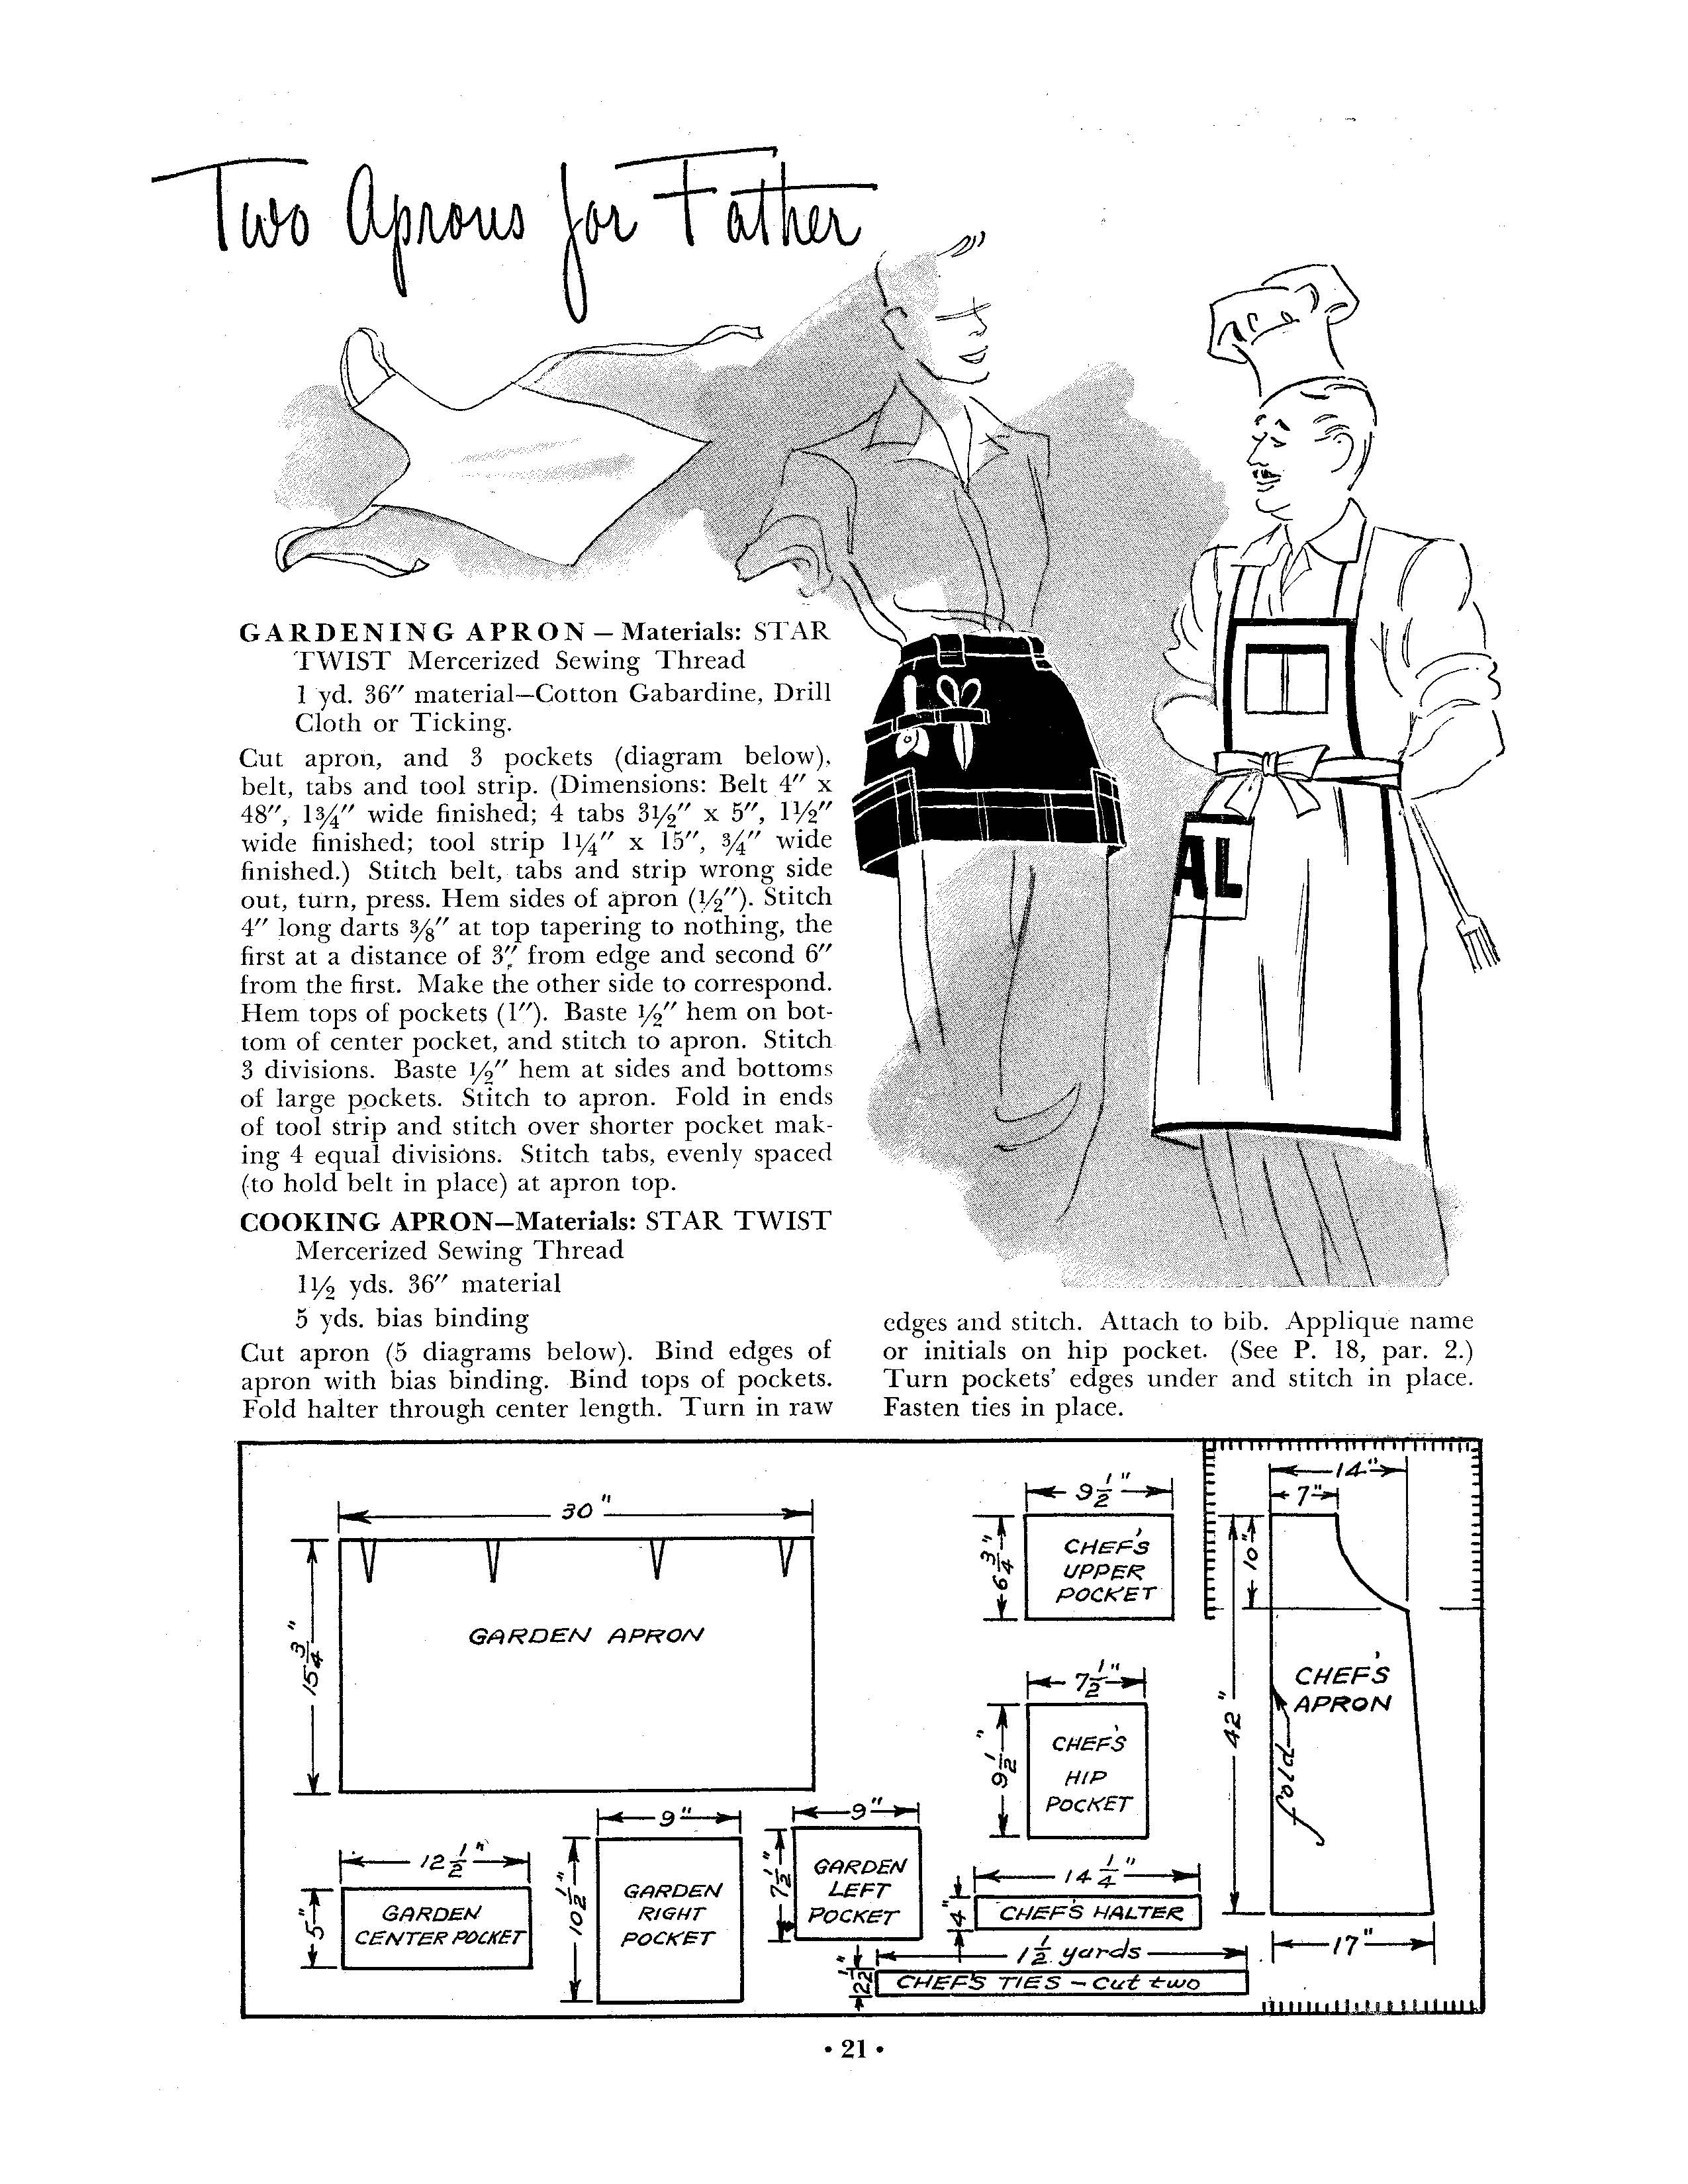 http://qisforquilter.com/wp-content/uploads/2013/03/Aprons-and-Bibs_Page_21.jpg